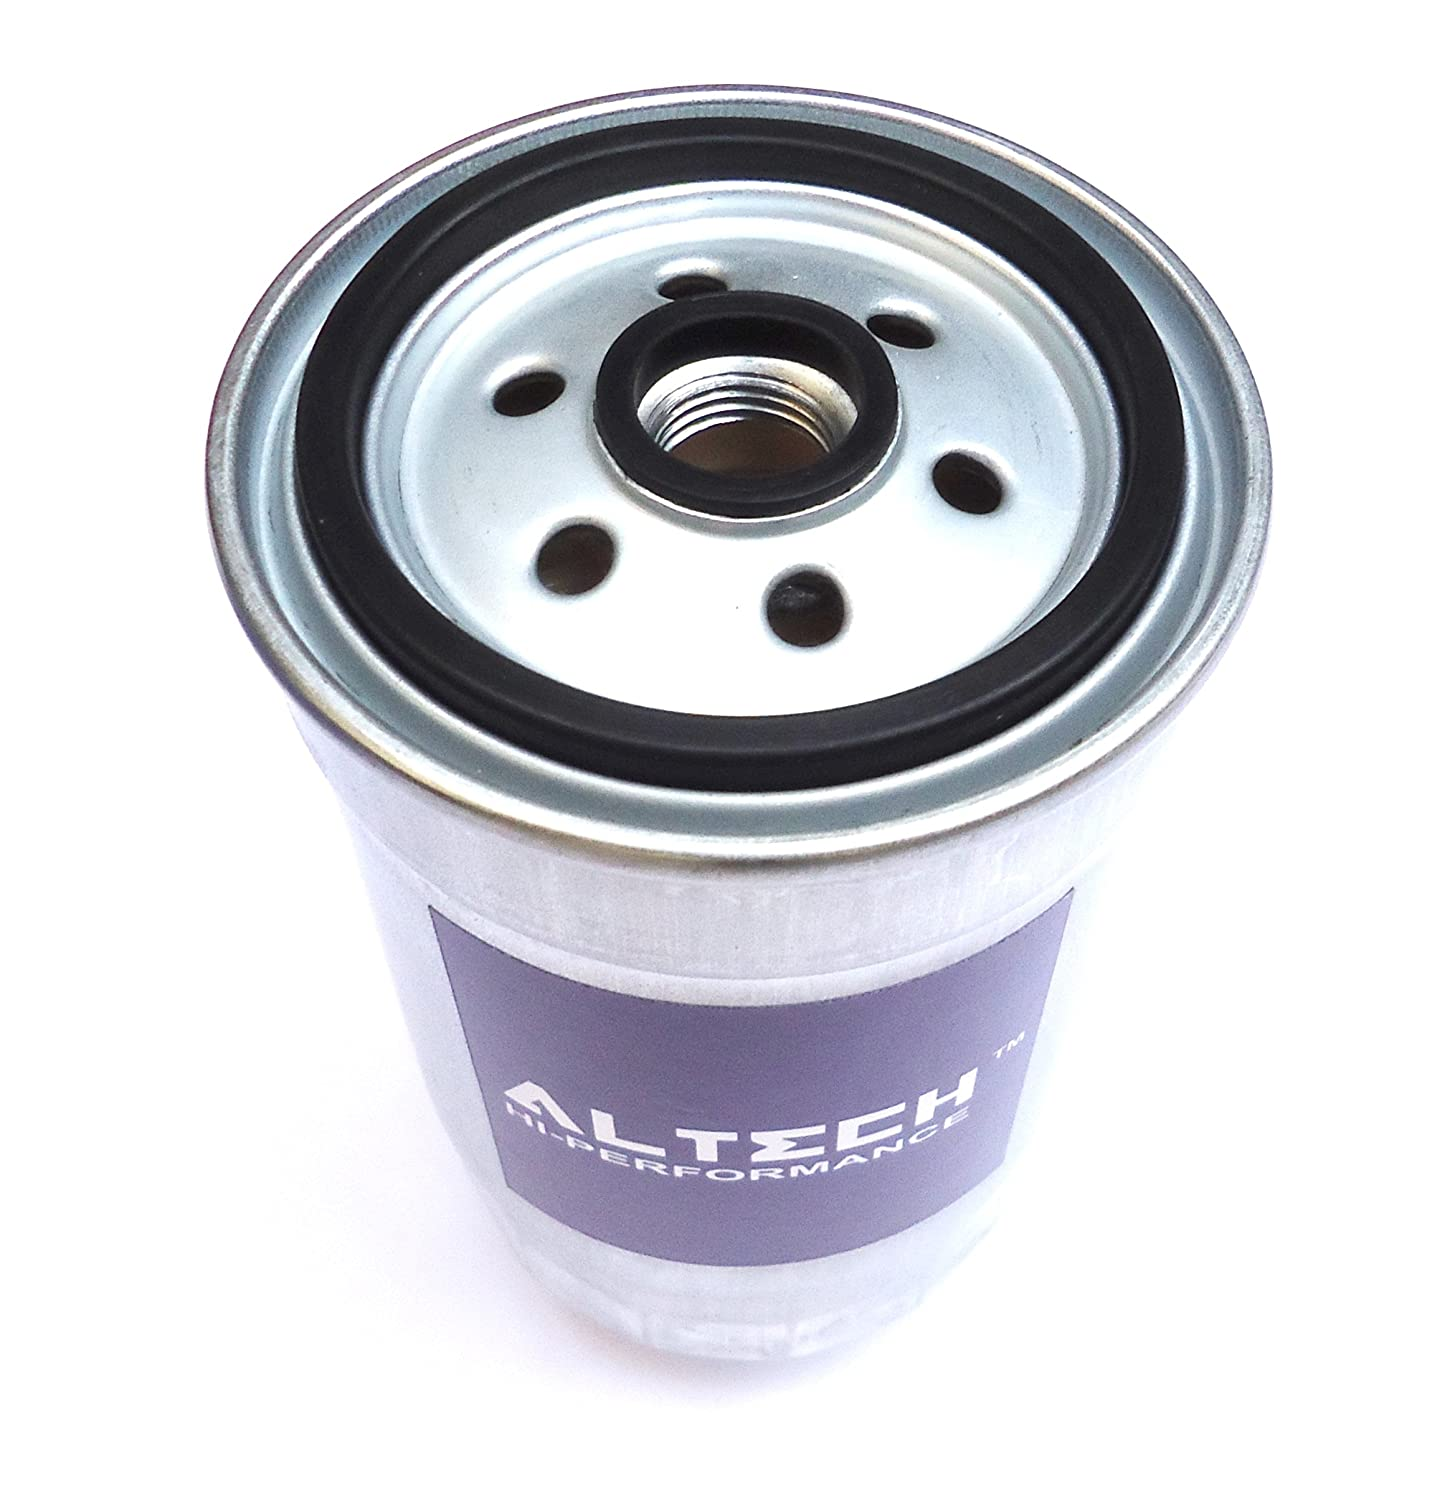 Fuel Filters Buy Online At Best Prices In India Toyota Pickup Filter Location Altech Hi Performance Diesel For Hyundai Xcent